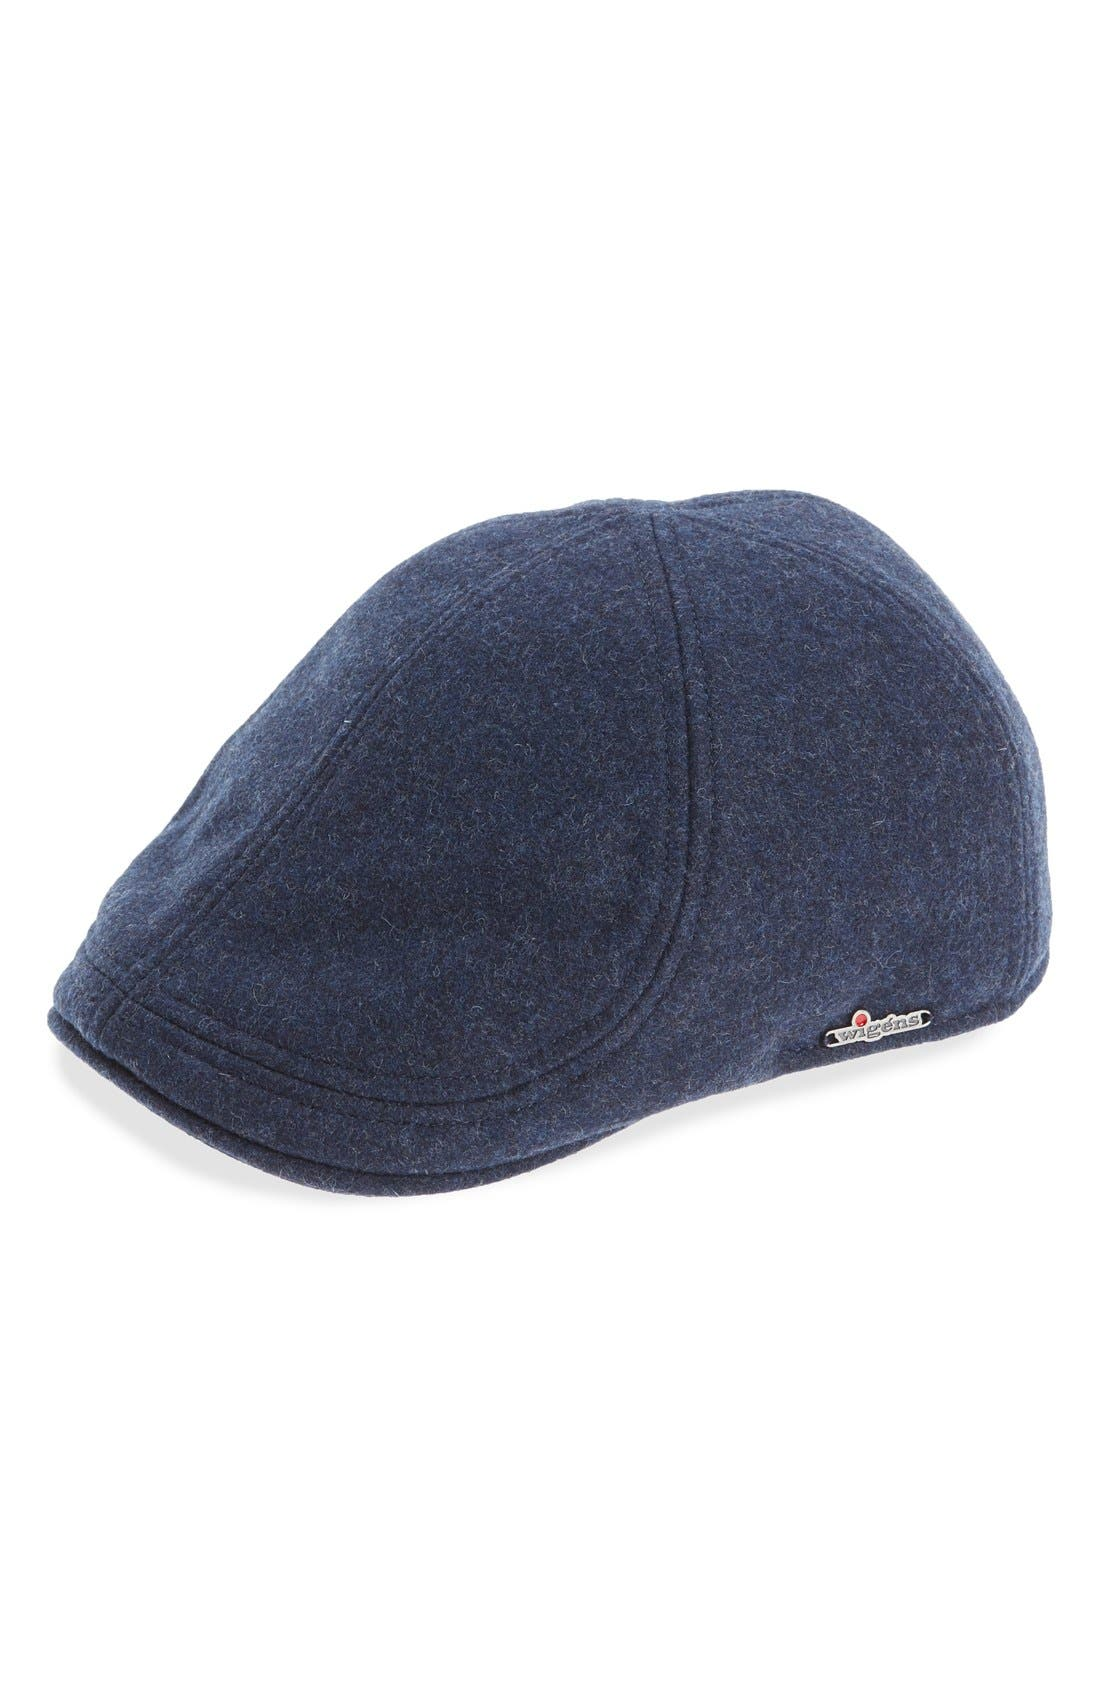 Wigens Wool Driving Cap